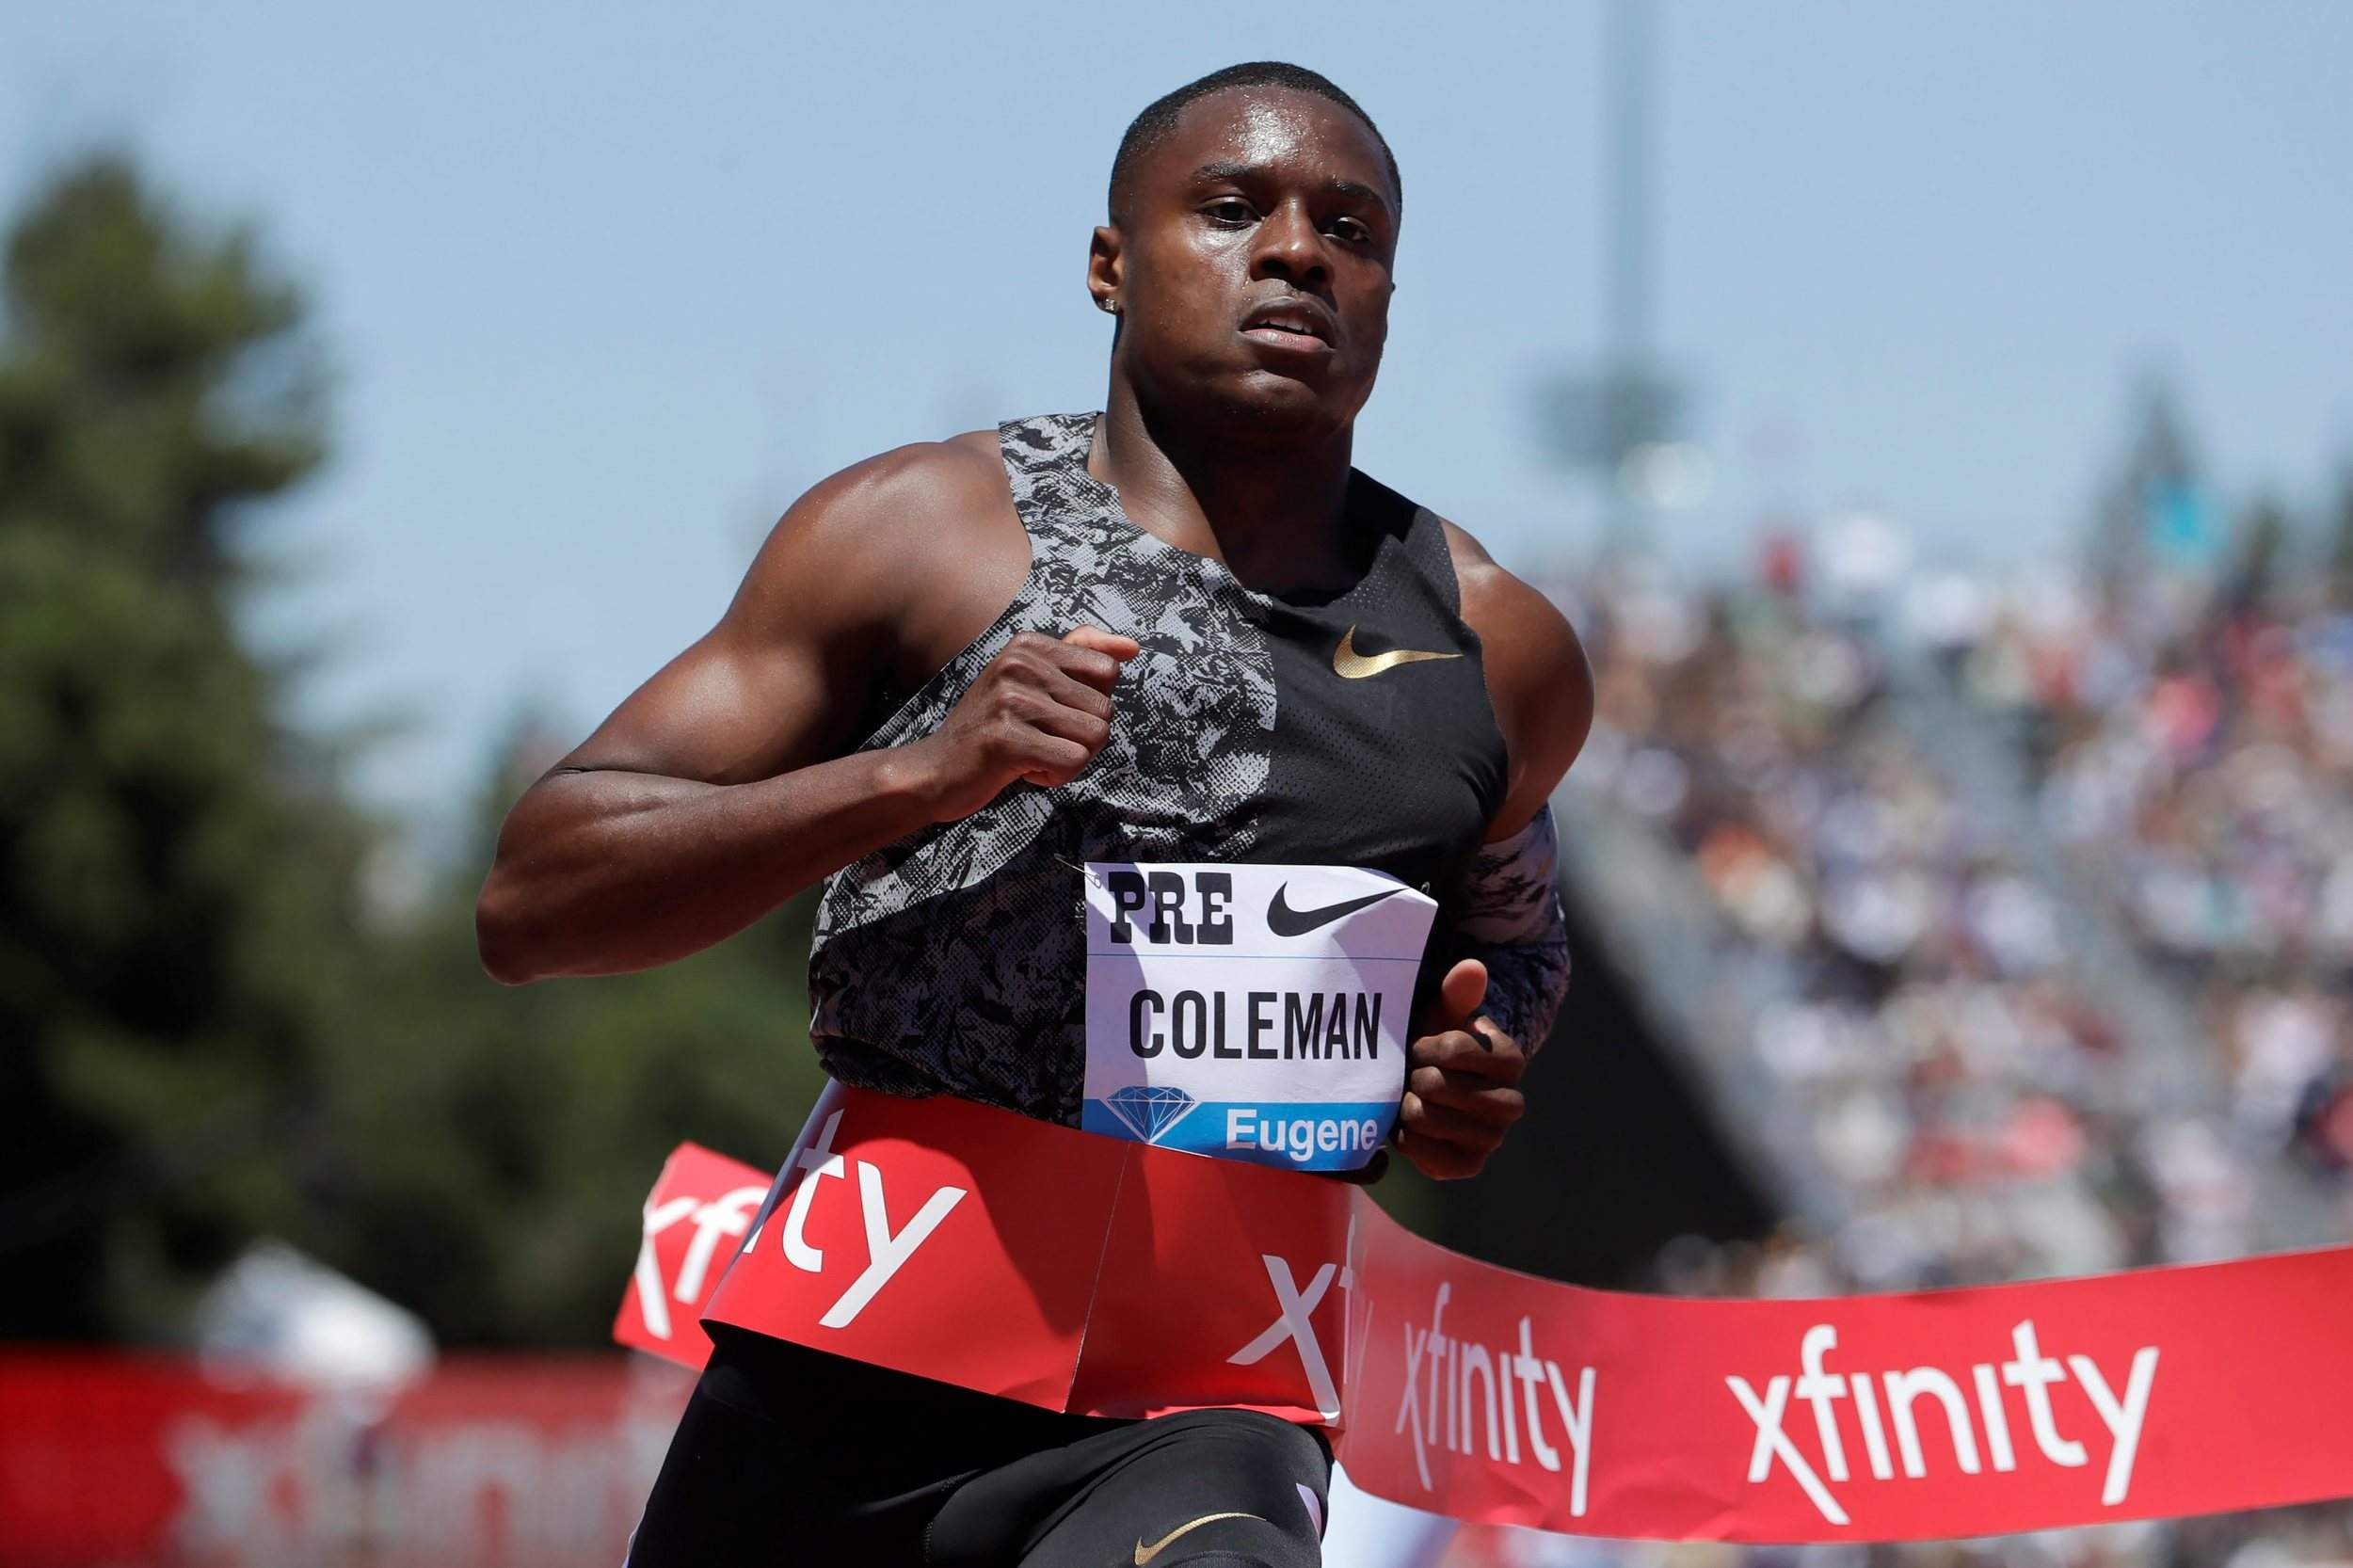 Christian Coleman facing missed drugs test allegations